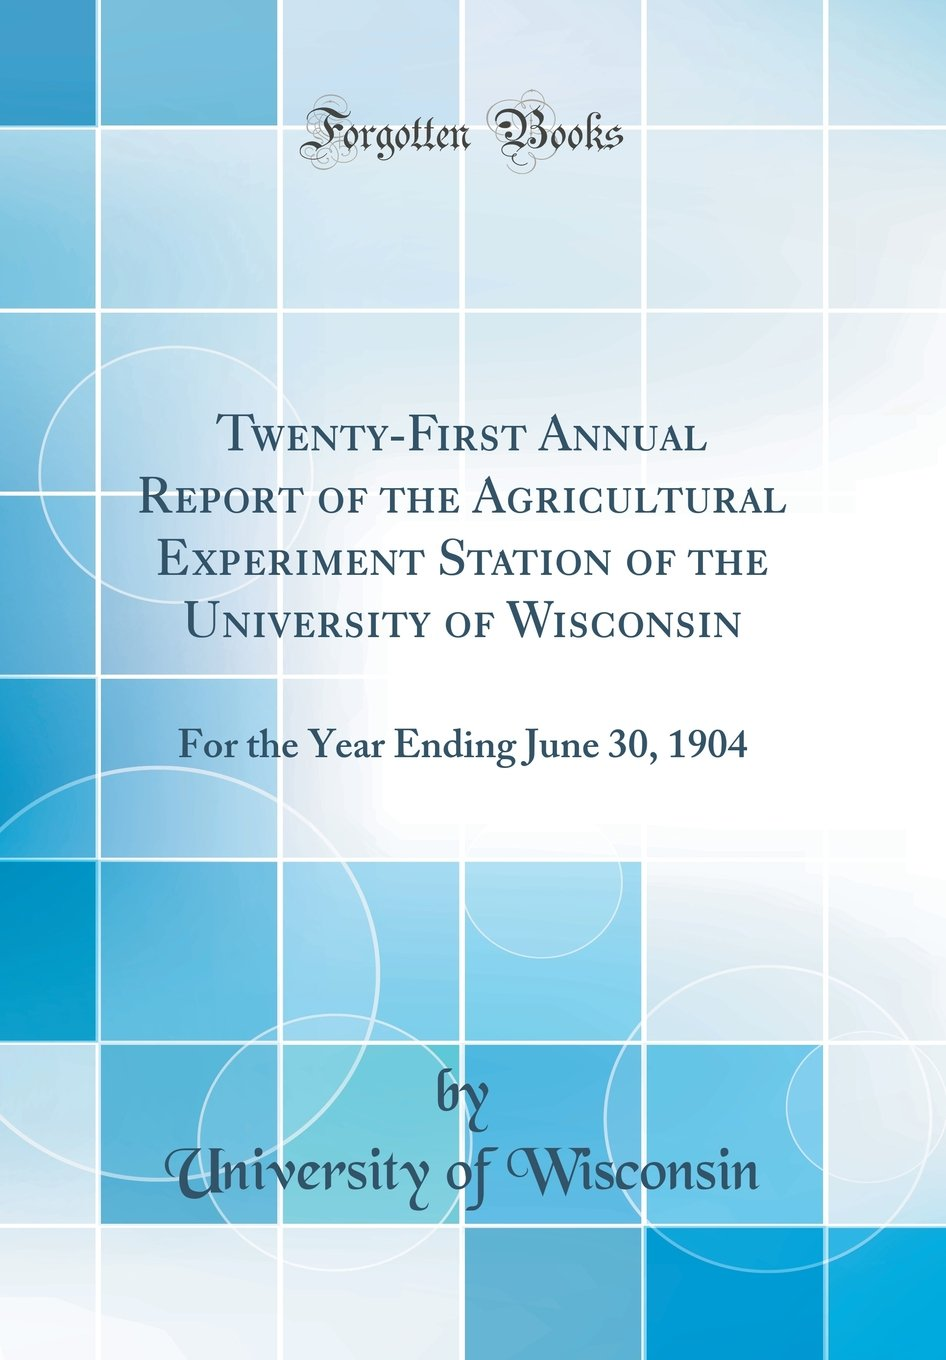 Download Twenty-First Annual Report of the Agricultural Experiment Station of the University of Wisconsin: For the Year Ending June 30, 1904 (Classic Reprint) PDF